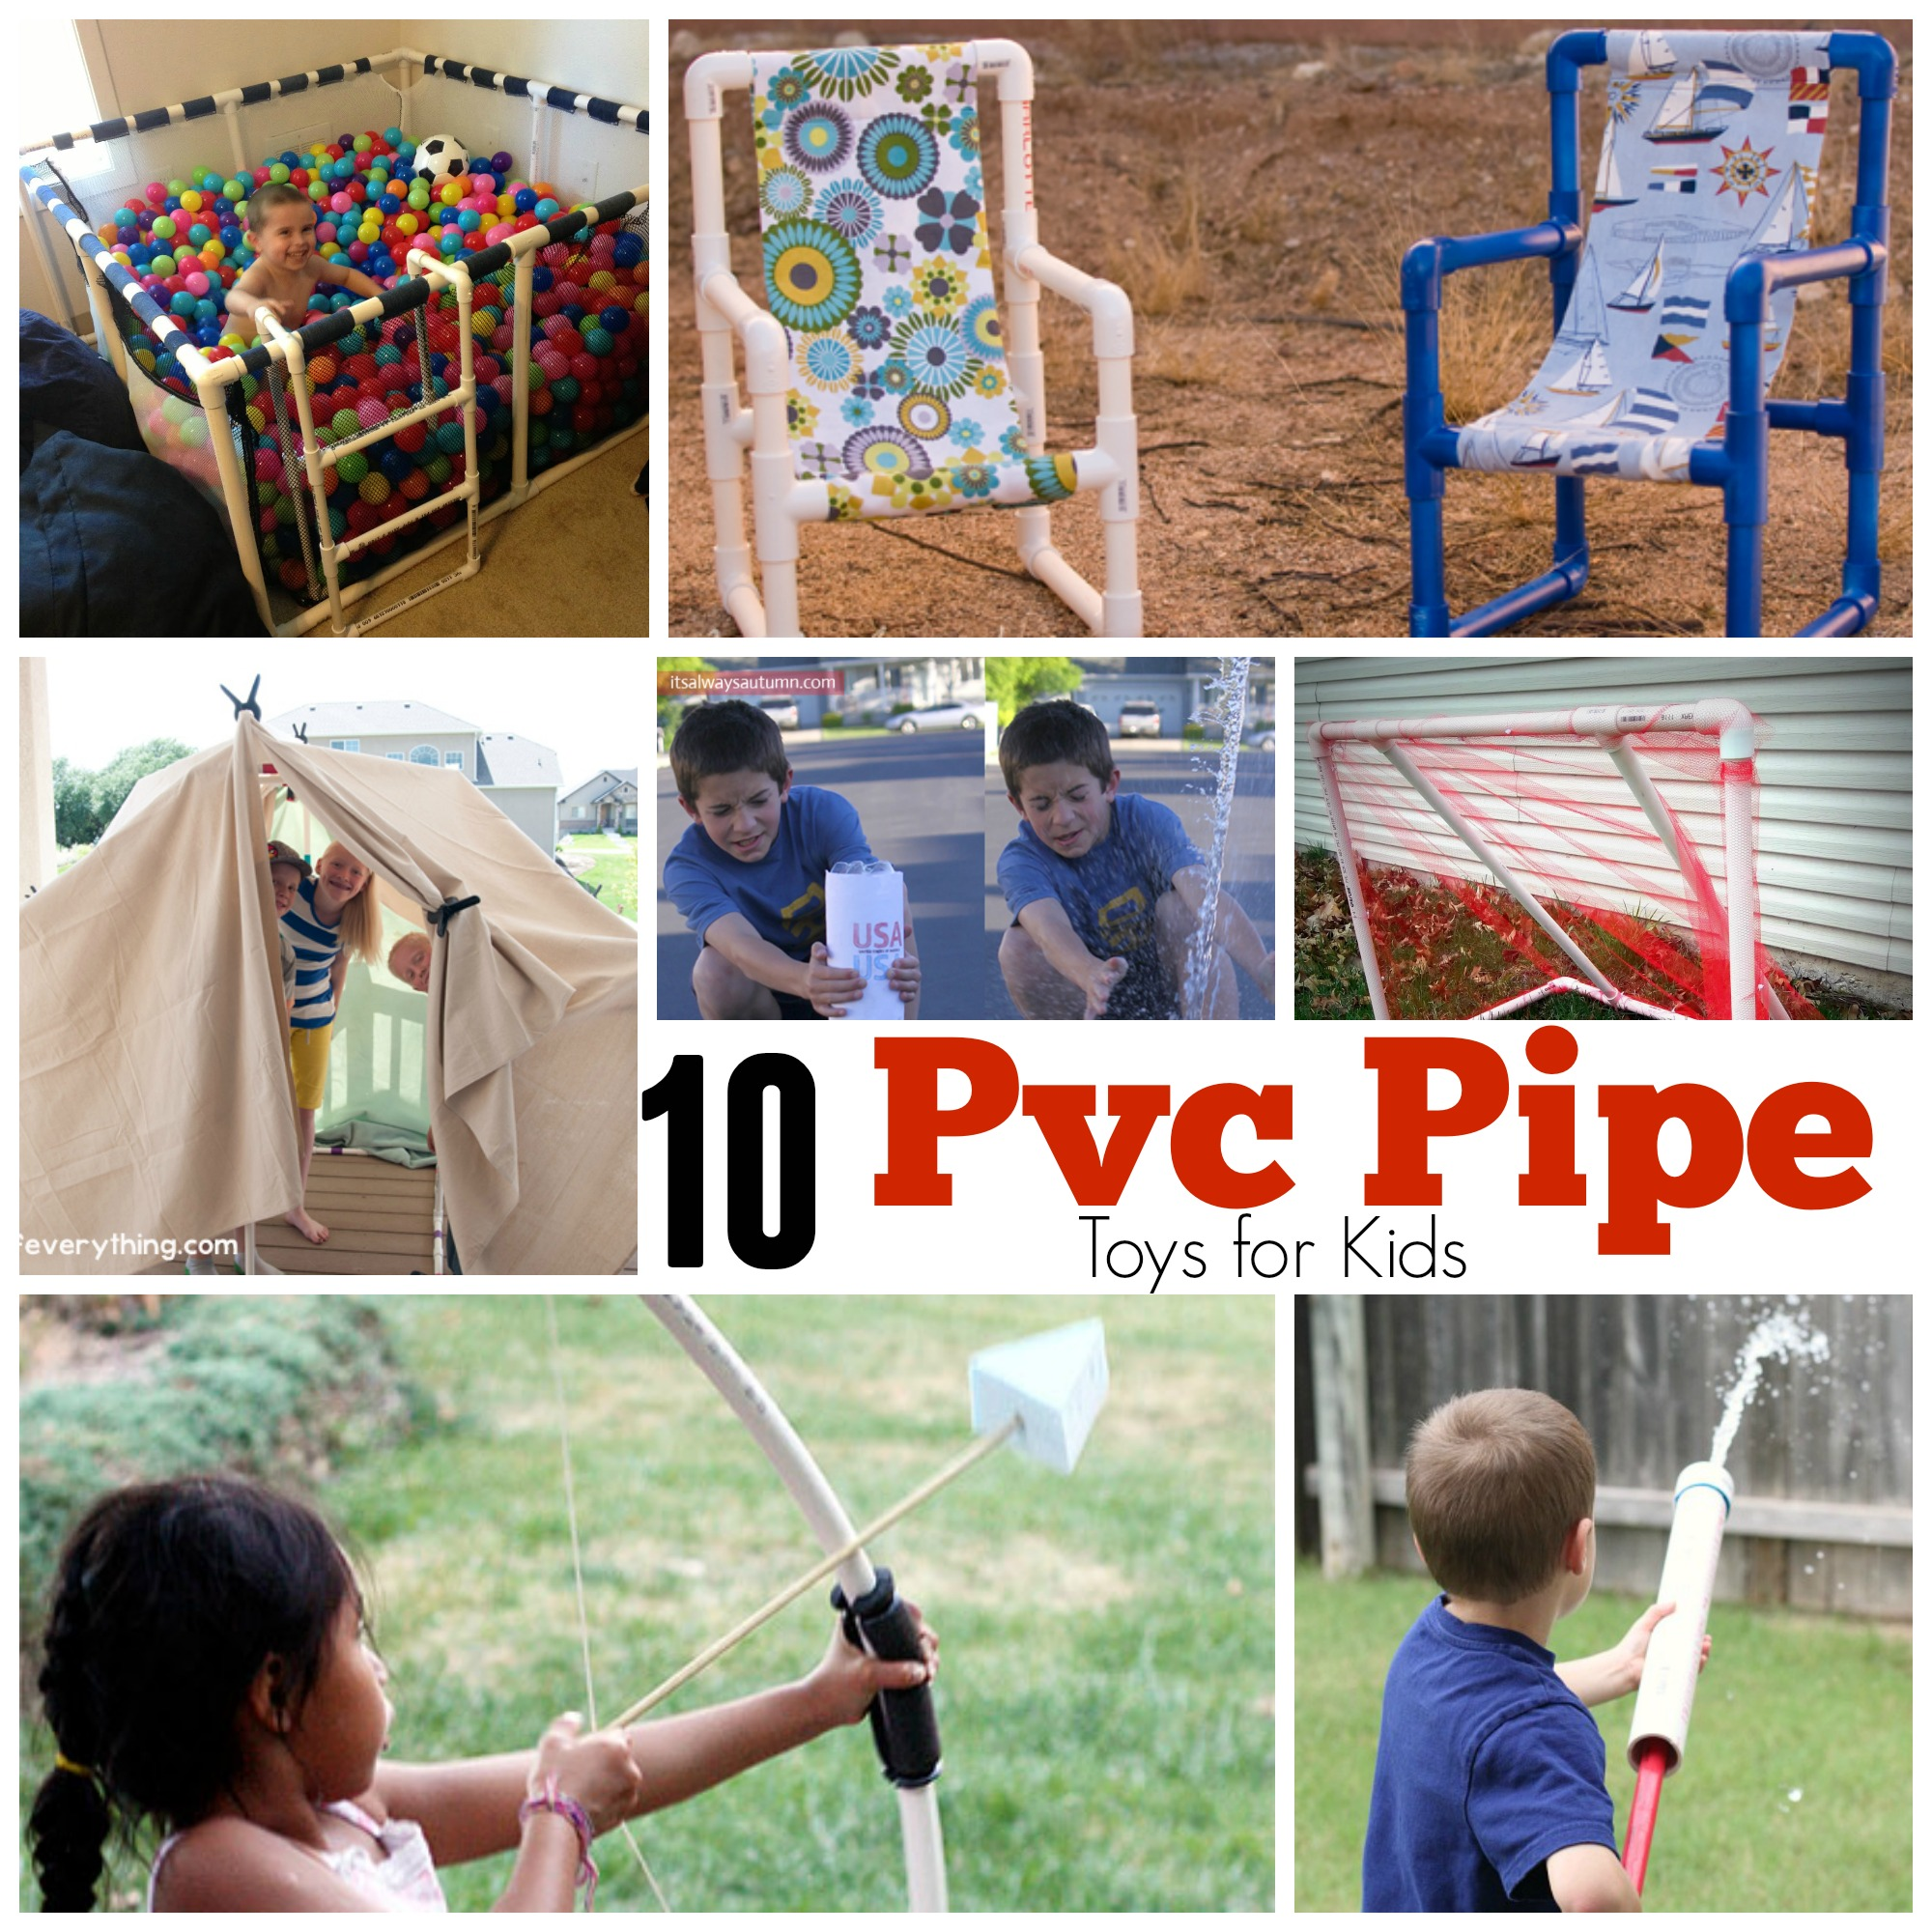 pvc pipe toys for kids